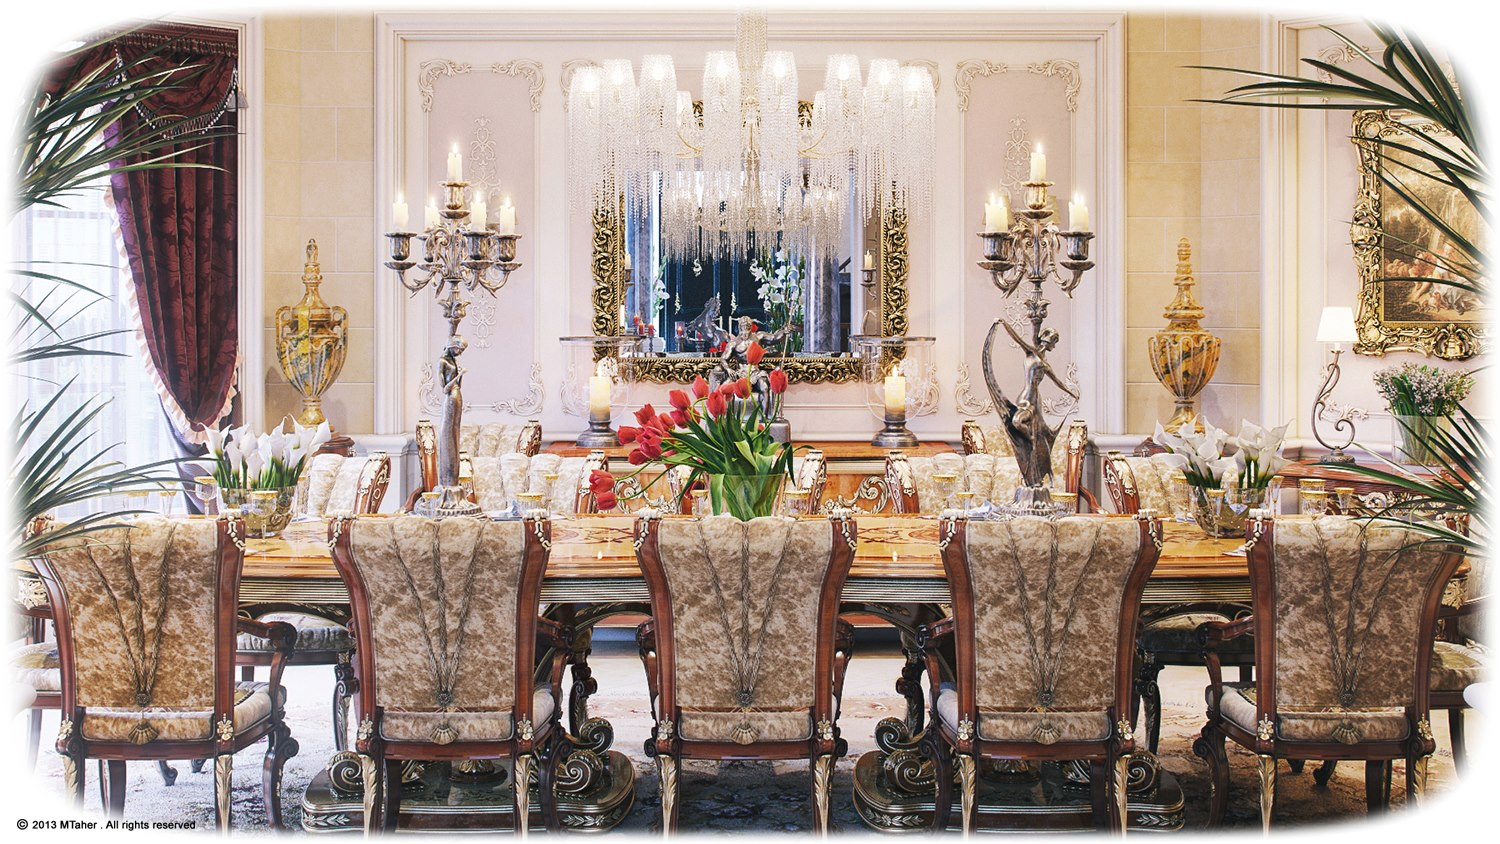 Luxury villa dining room 2 interior design ideas for Luxury dining room design